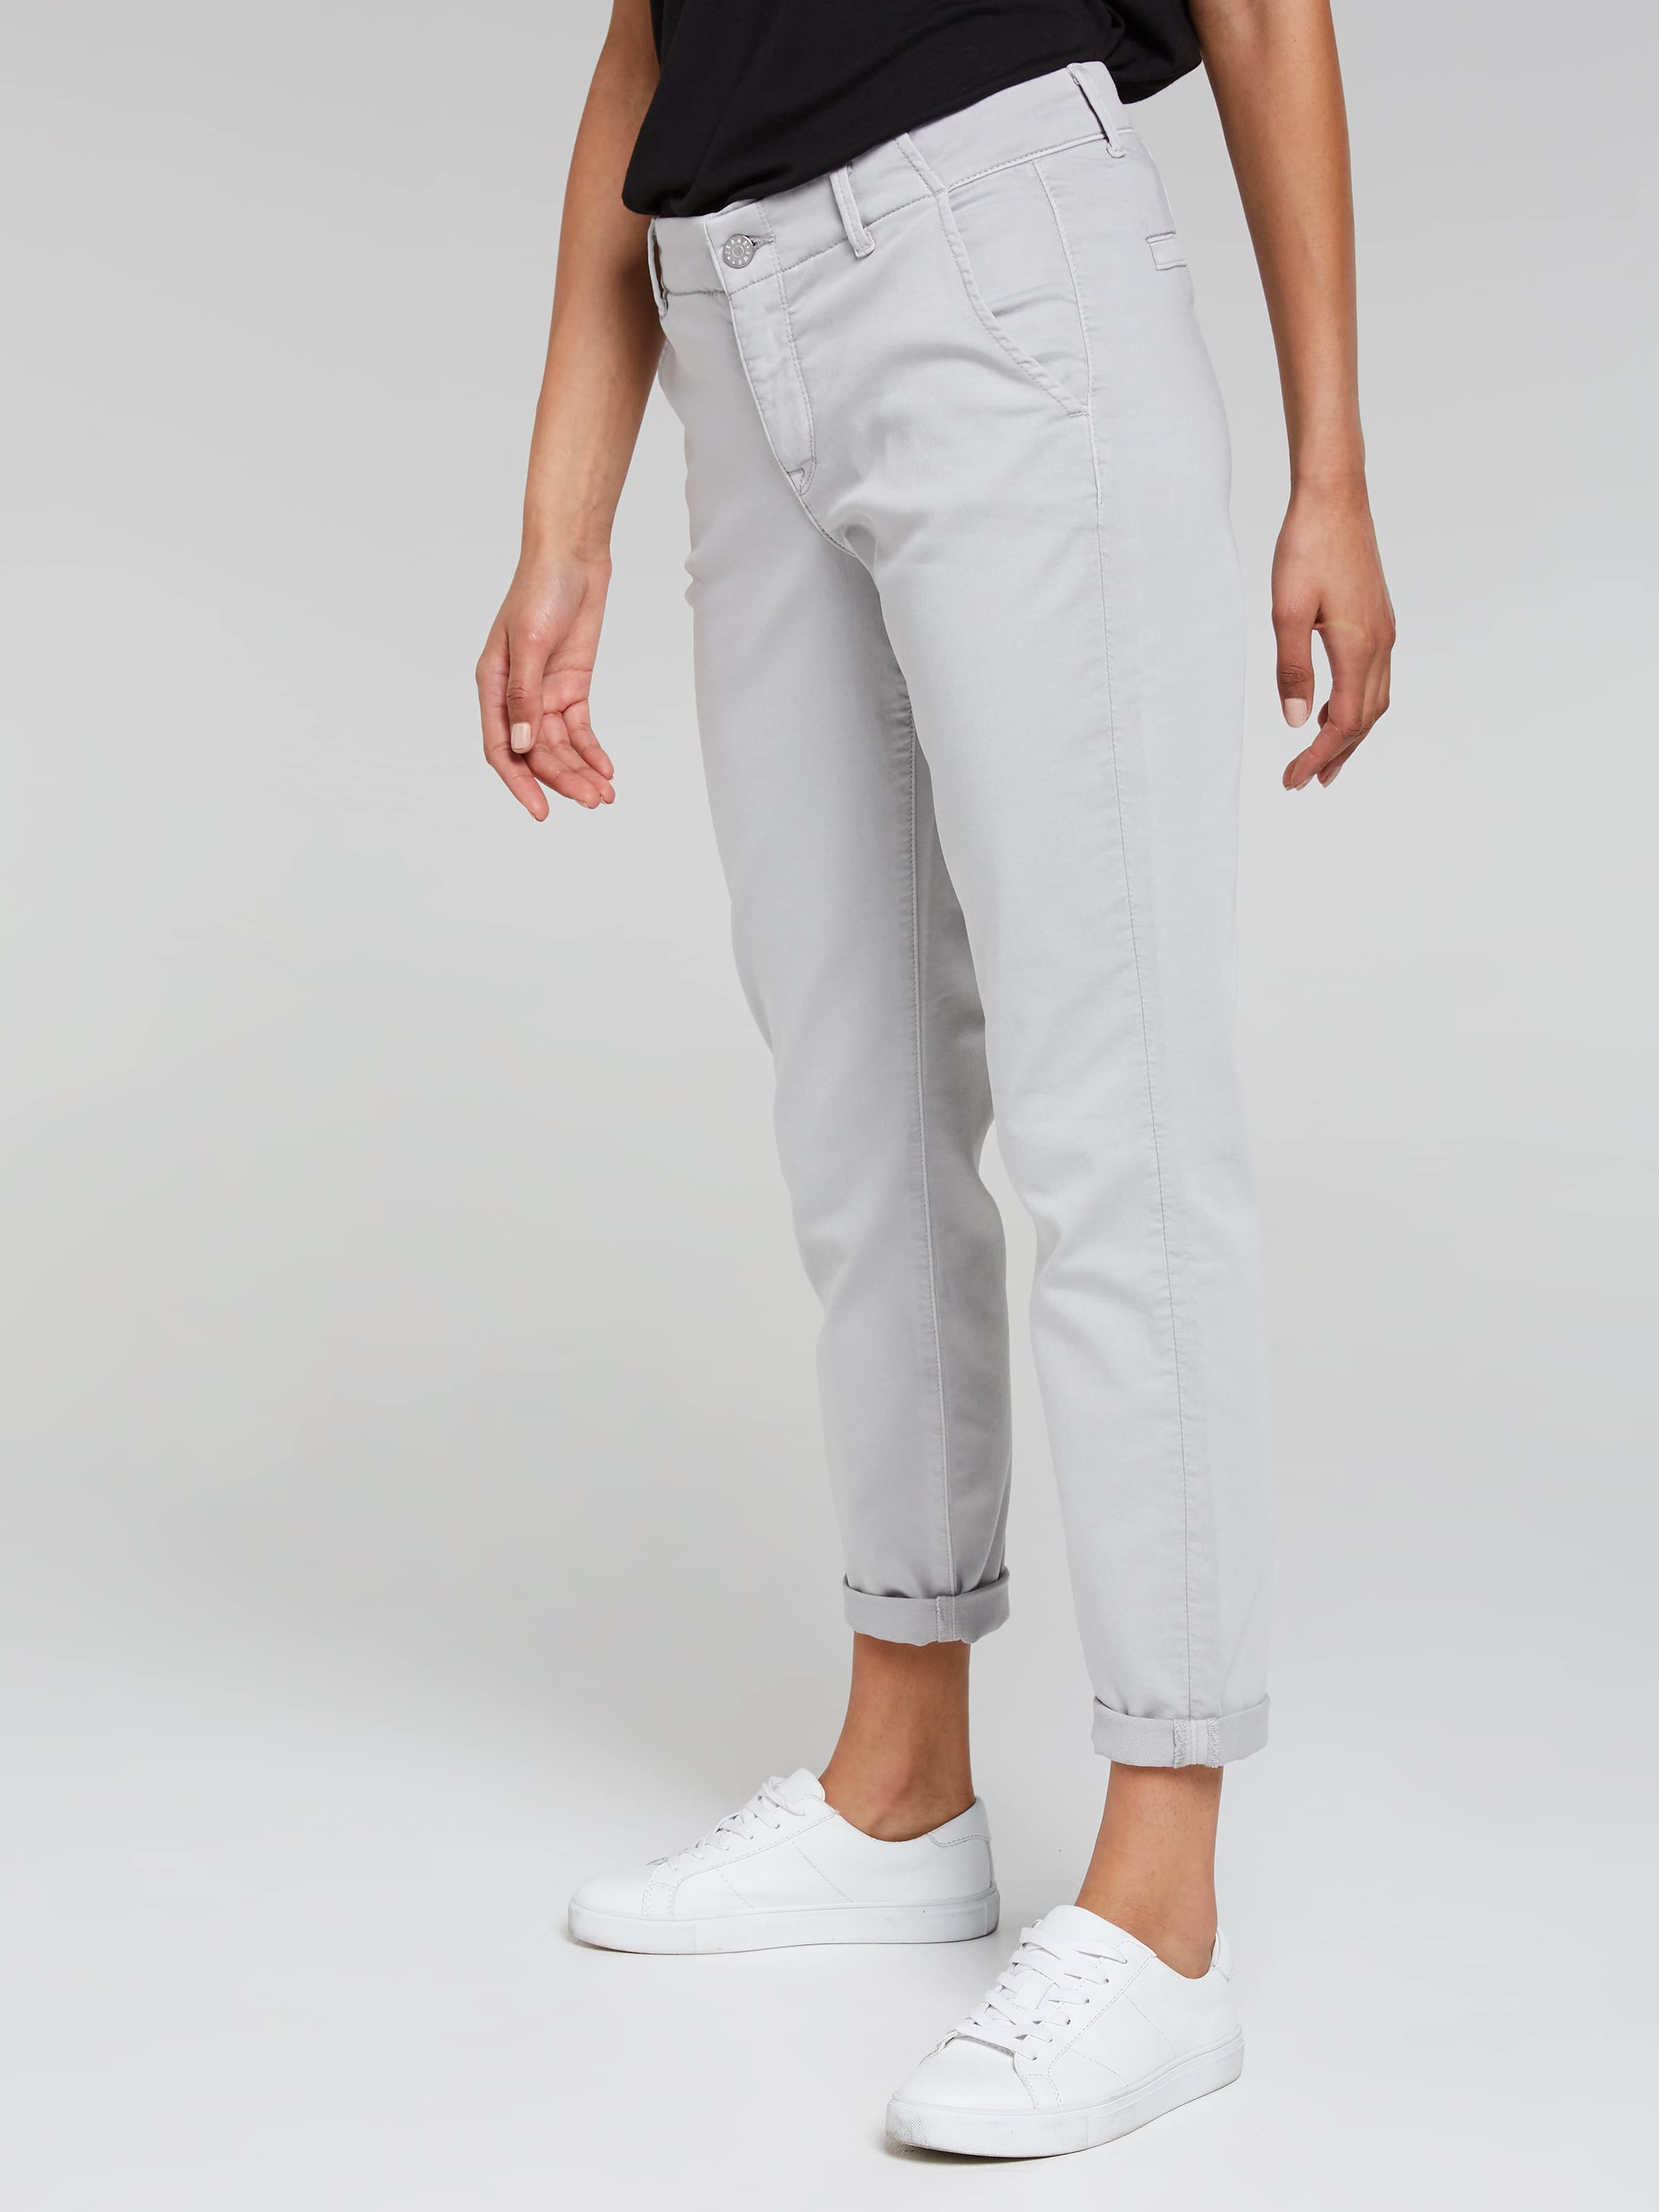 Just Jeans Amaze Chino 9111534